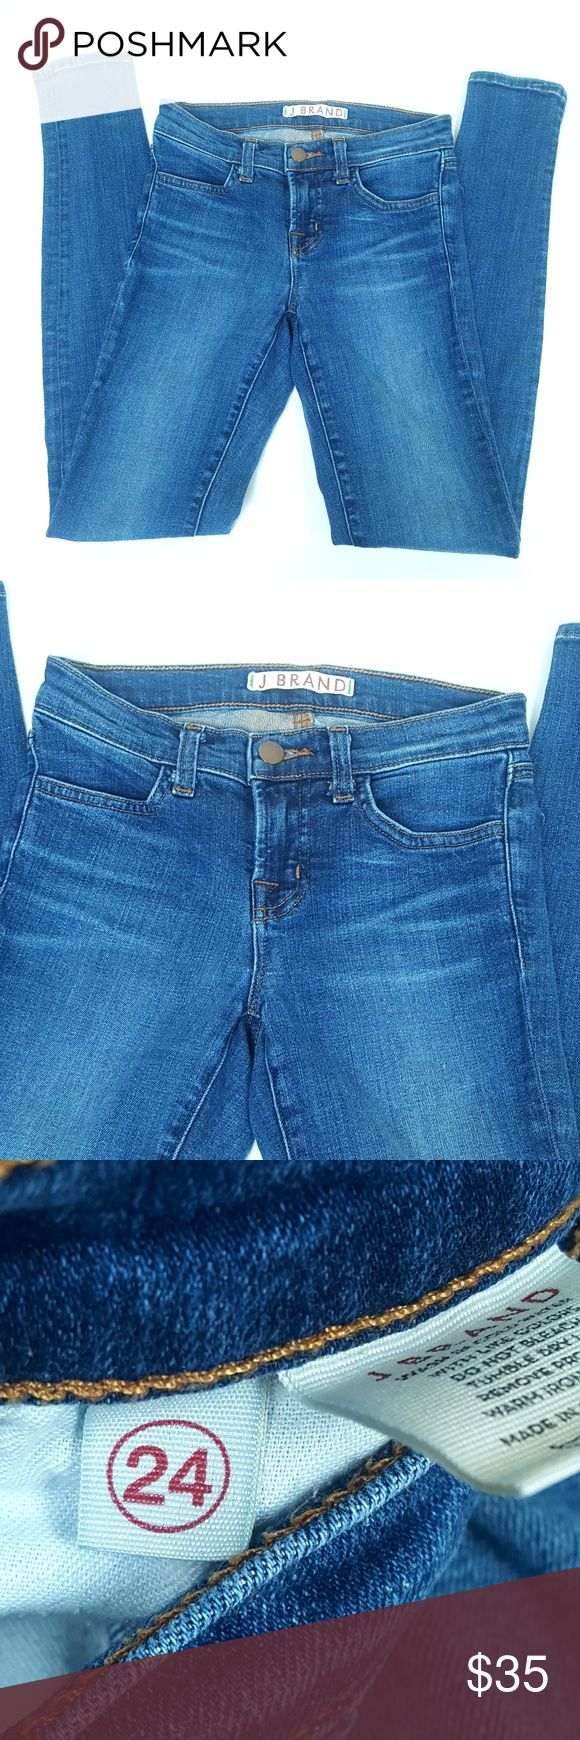 J Brand Classic Mid Rise Super Skinny Jeans Sz 24 Style 620O212 J Brand Mid Rise Super Skinny in Blue Bell Classic Medium Wash  Sz 24 Inseam 30 inches  Our classic super skinny in our ultra stretch blue blend denim has maximum recovery with a super soft hand feel. J Brand Jeans Skinny